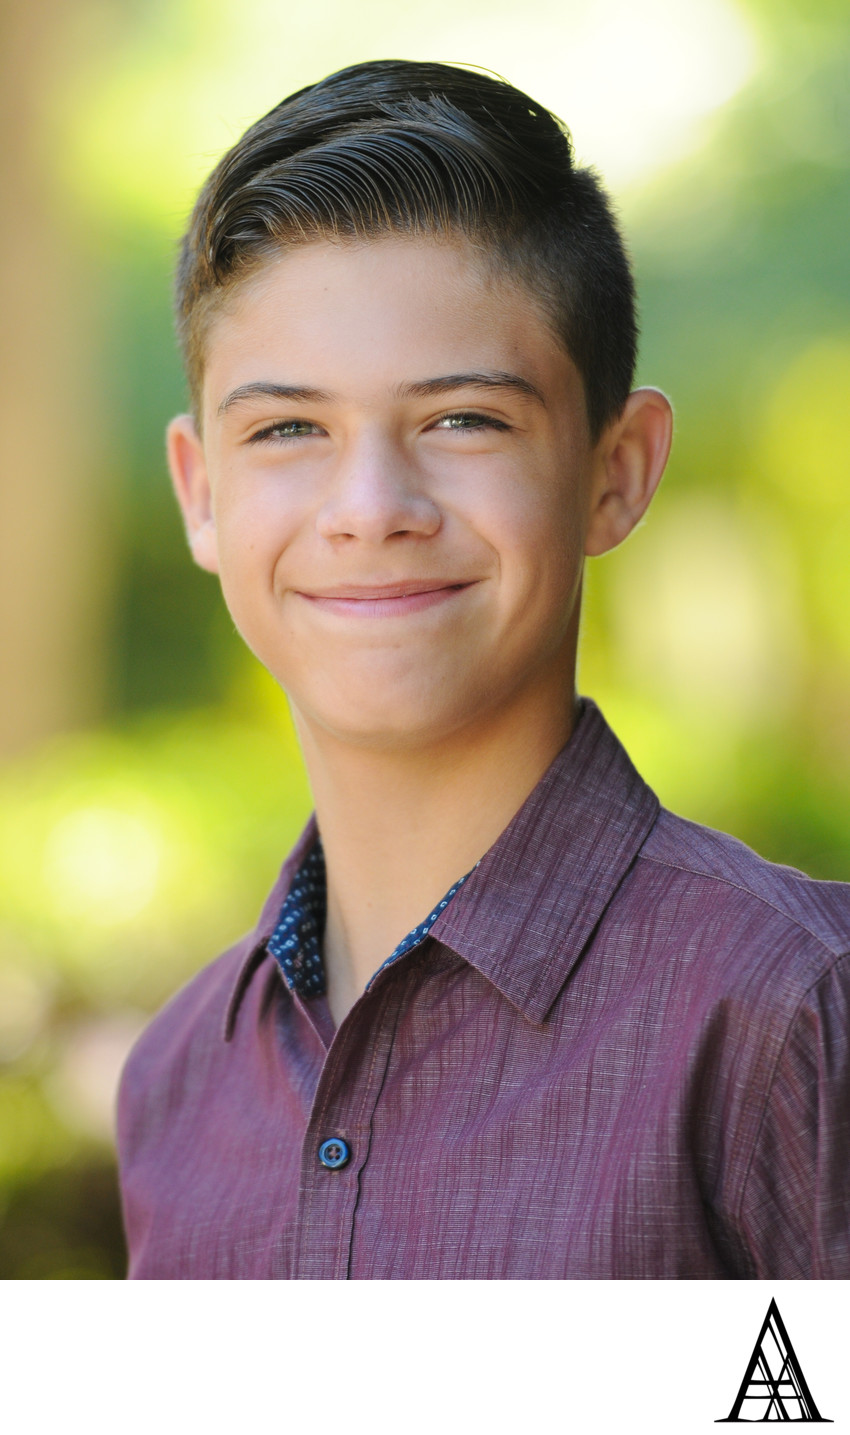 Teen Portrait Photographer Sacramento Headshots